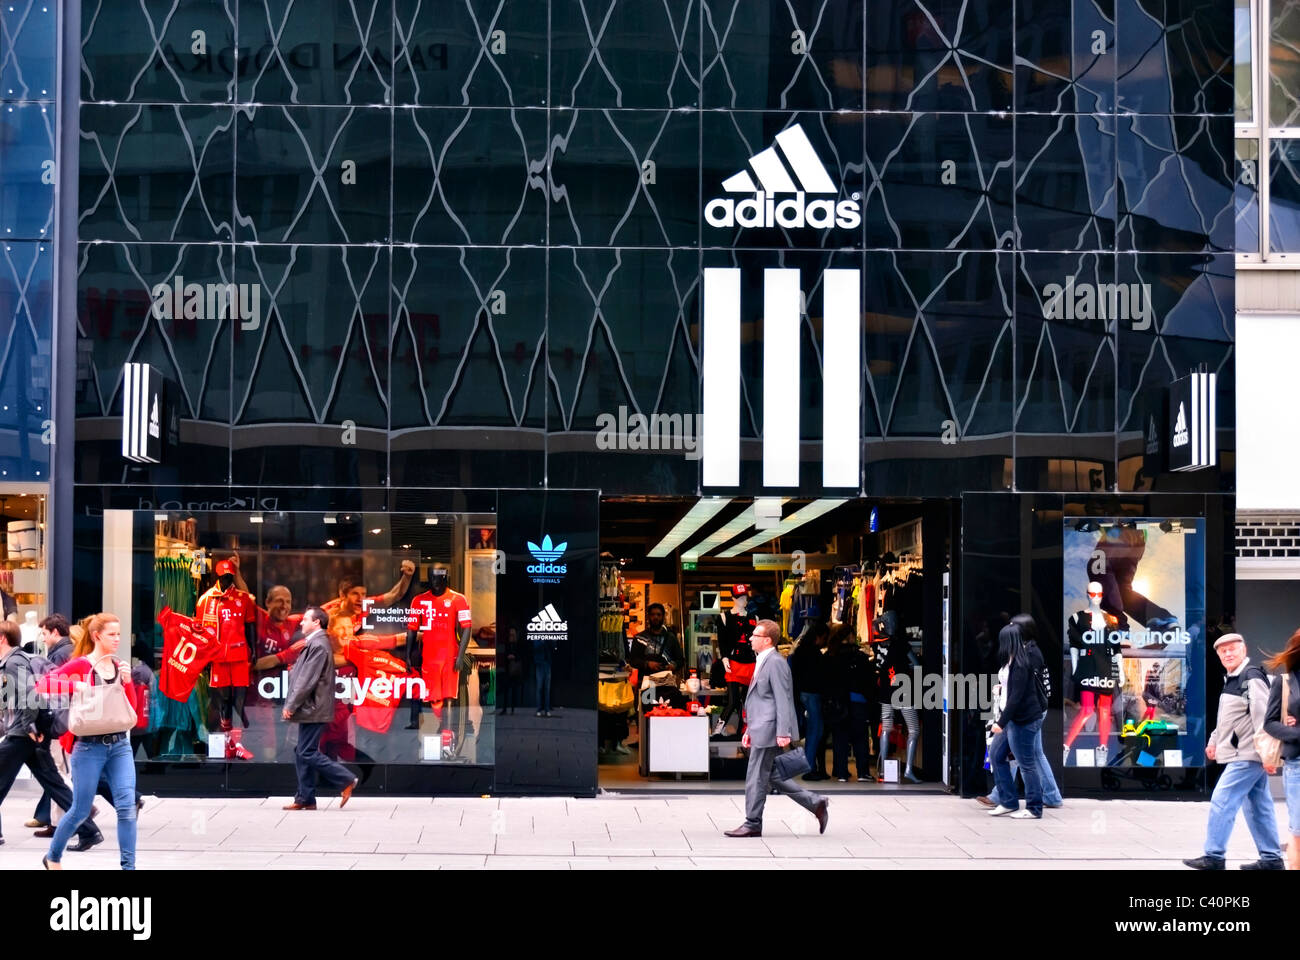 adidas store in frankfurt town center germany stock photo royalty free image 36897151 alamy. Black Bedroom Furniture Sets. Home Design Ideas